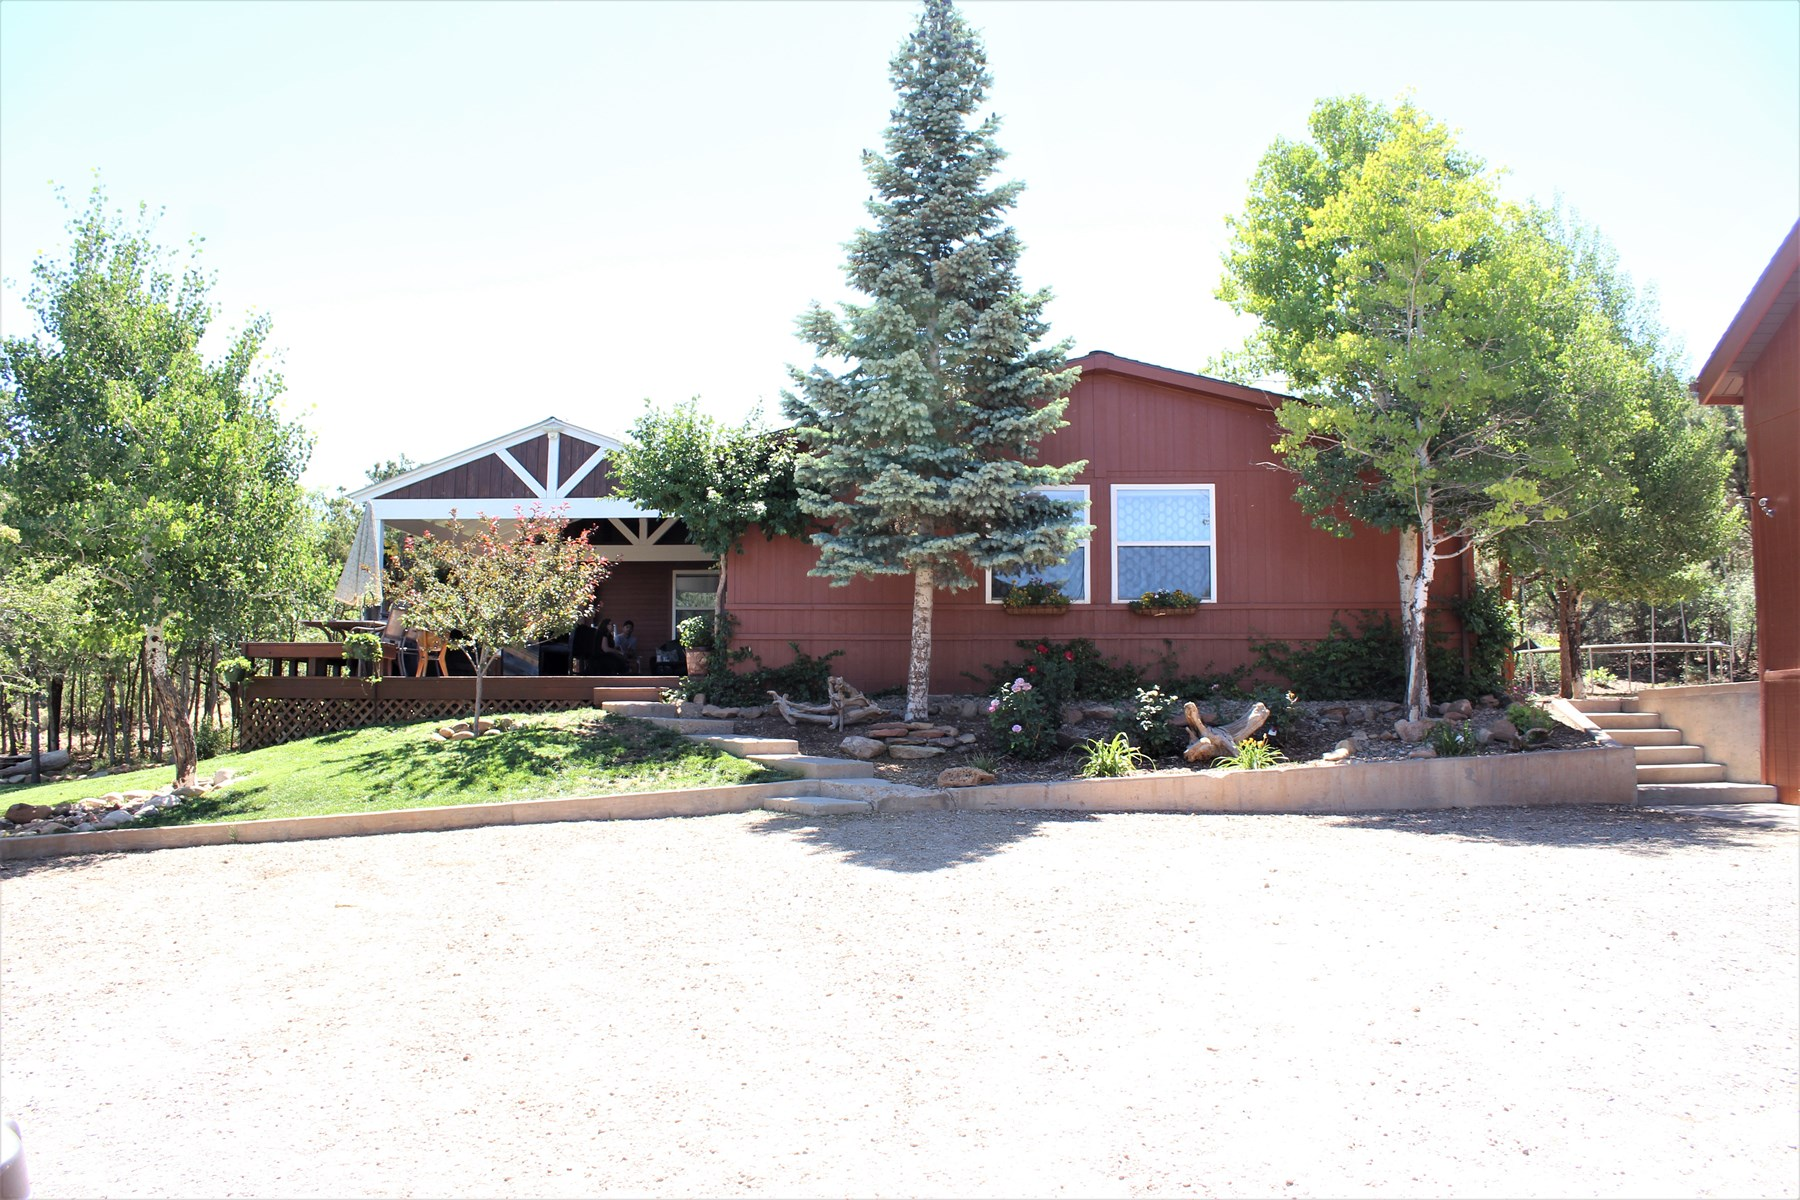 3 Bed 2 Bath Home For Sale on 3 Acres Dolores, CO